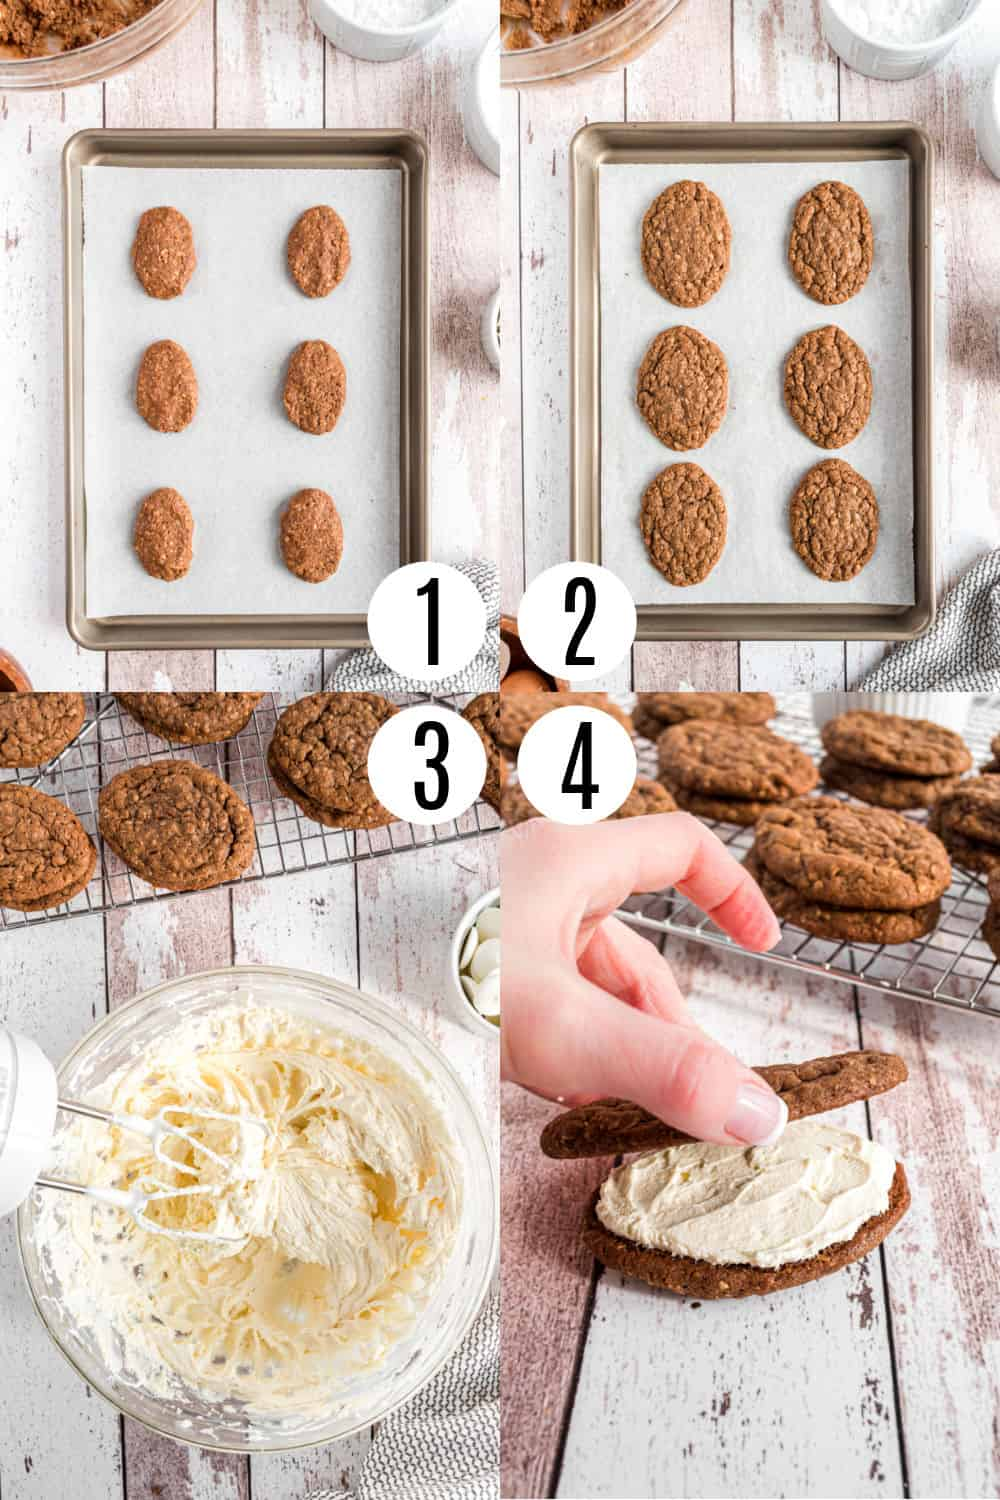 Step by step photos showing how to make football shaped chocolate oatmeal cream pies.